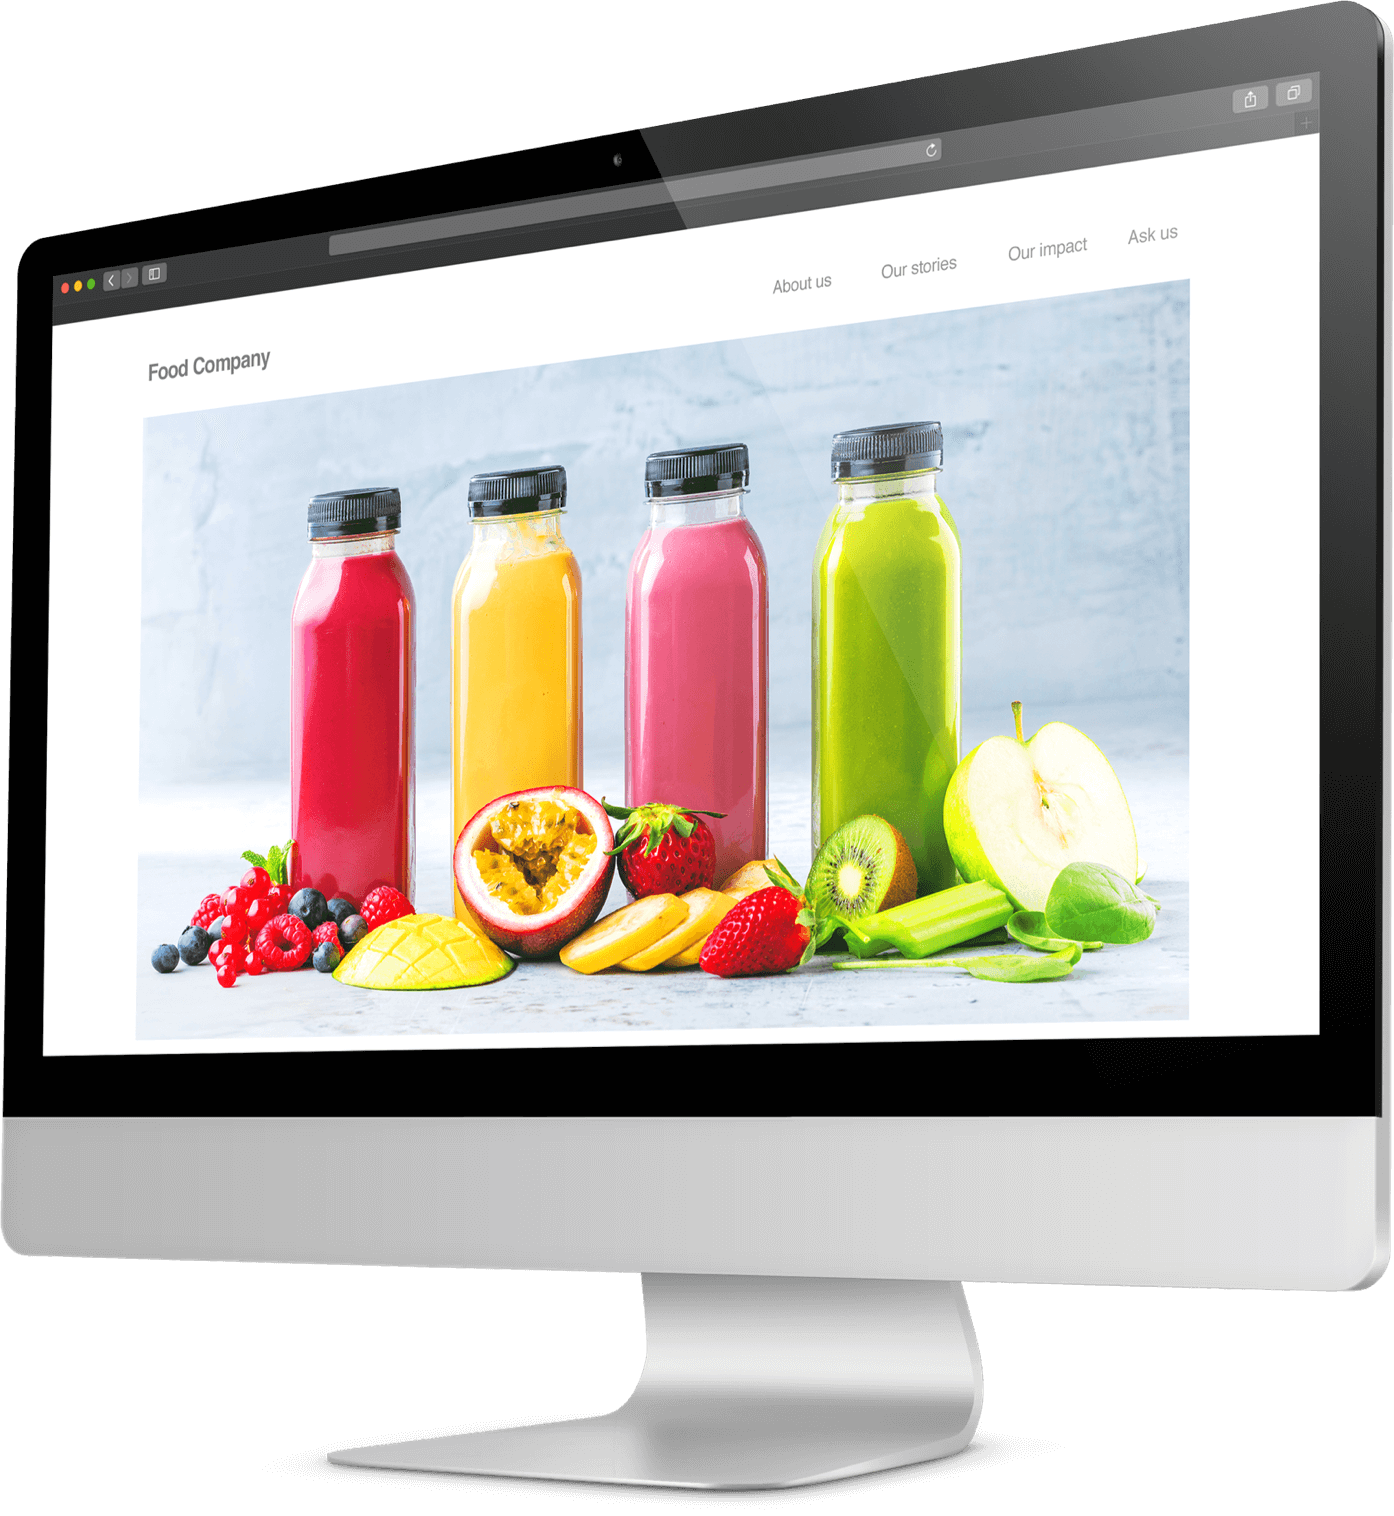 Photo of colorful juice bottles shown on a desktop